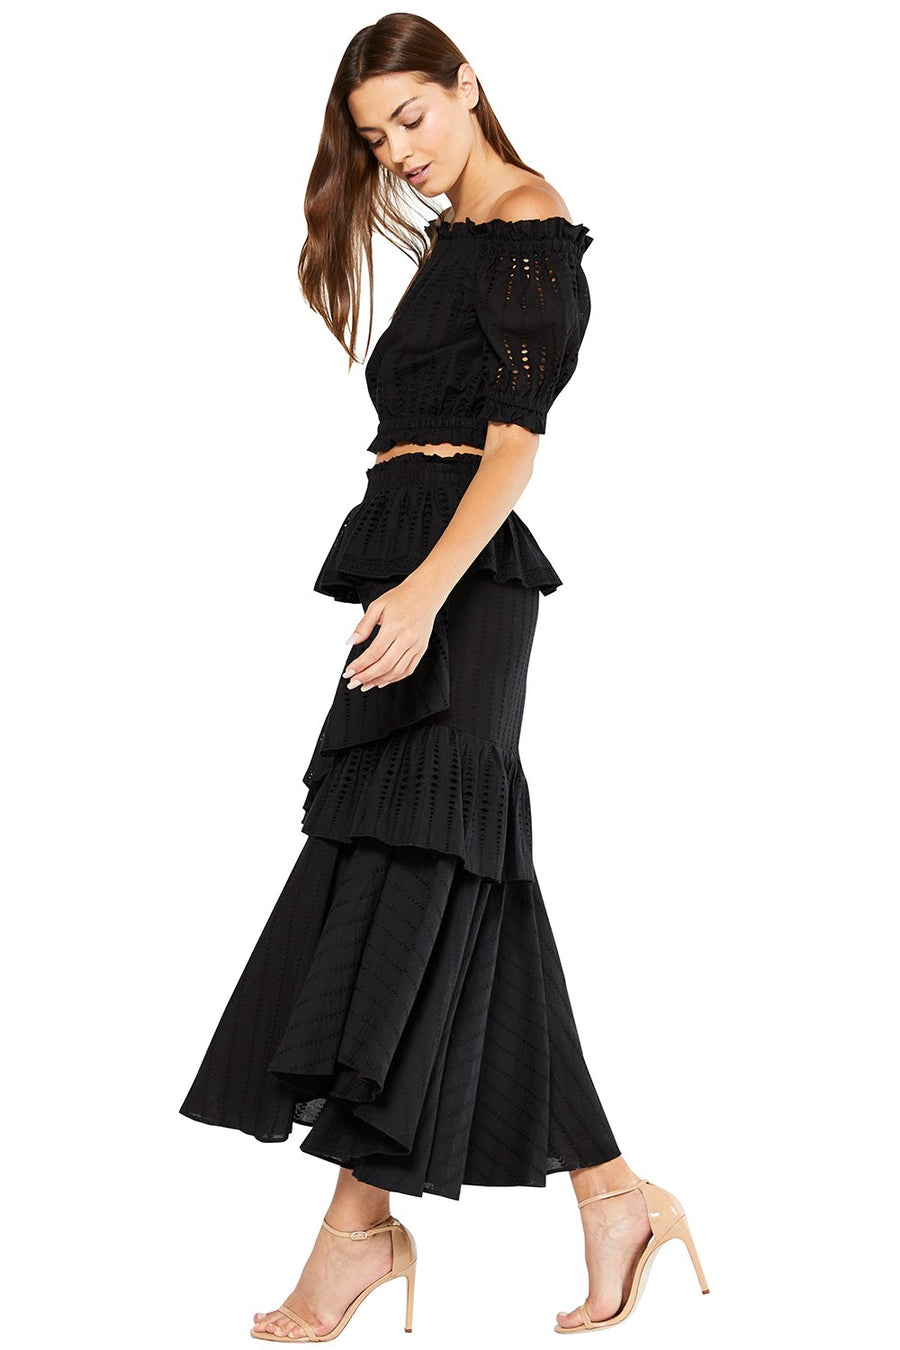 Misa Joseva Skirt in Black